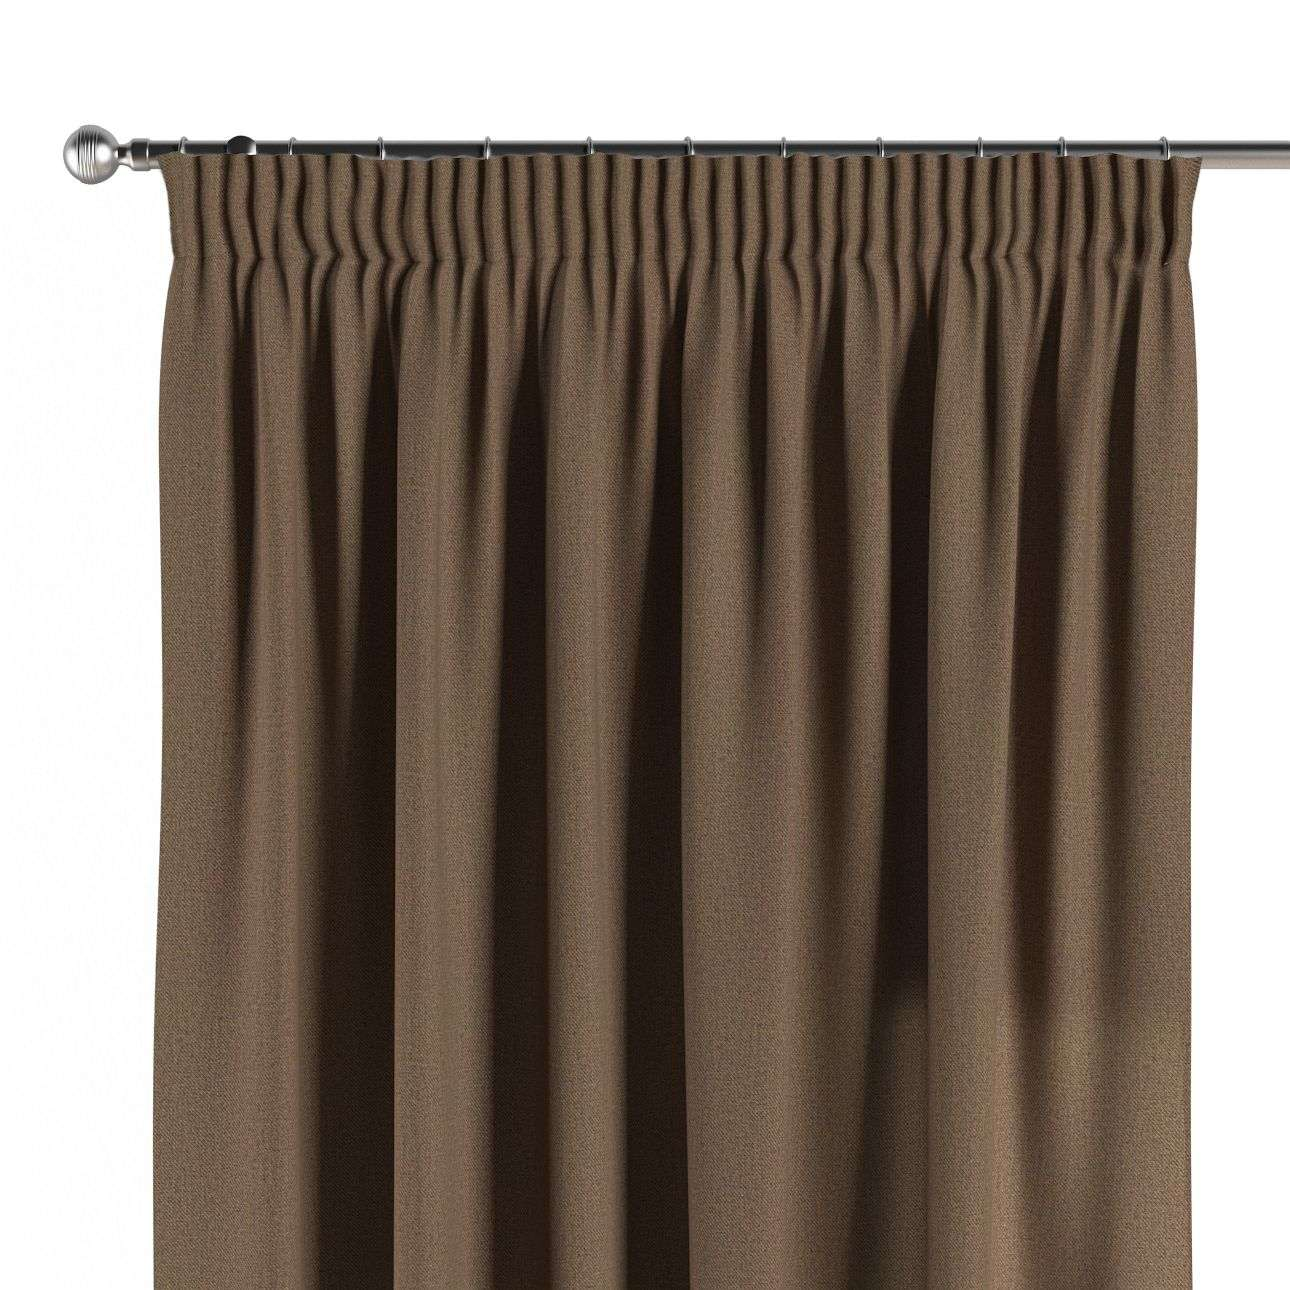 Pencil pleat curtains 130 x 260 cm (51 x 102 inch) in collection Edinburgh, fabric: 115-85